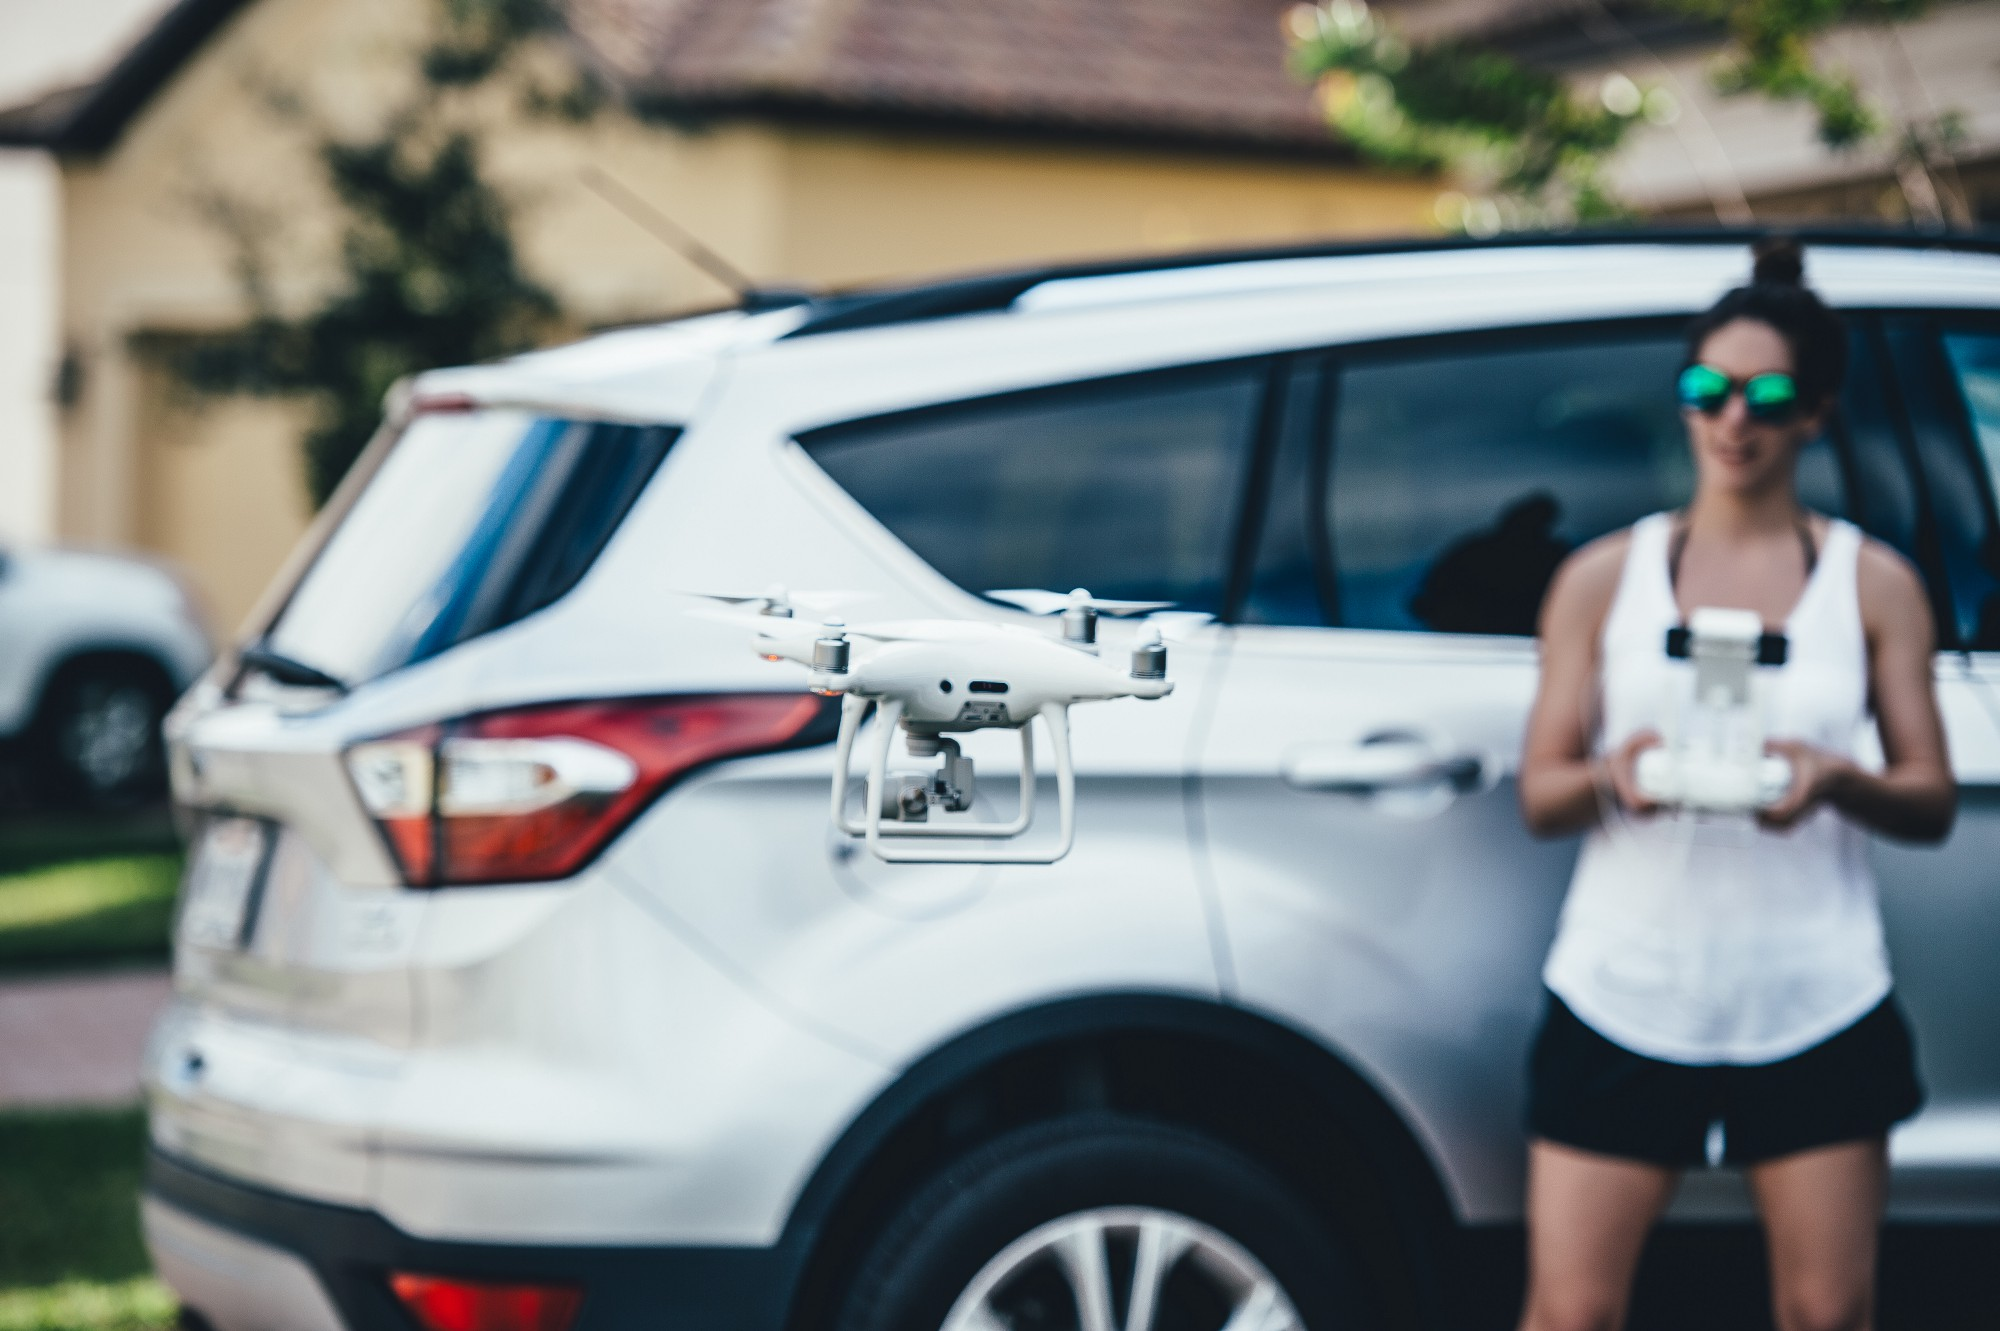 Woman standing in a driveway with her back to a light SUV while operating an aerial drone that hovers at shoulder height.